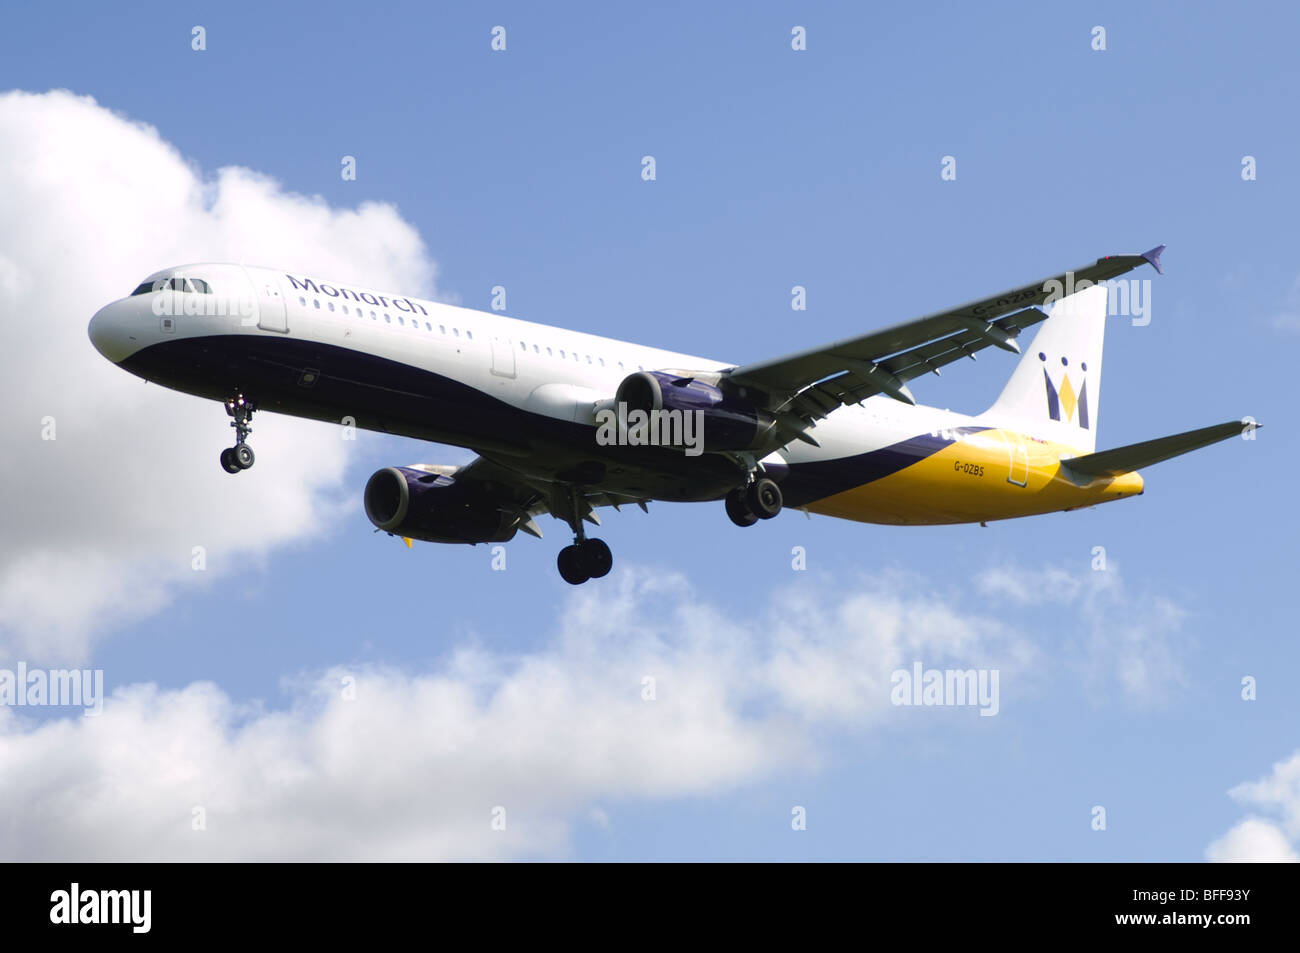 Airbus A3231 operated by Monarch Airlines on approach for landing at Birmingham Airport Stock Photo